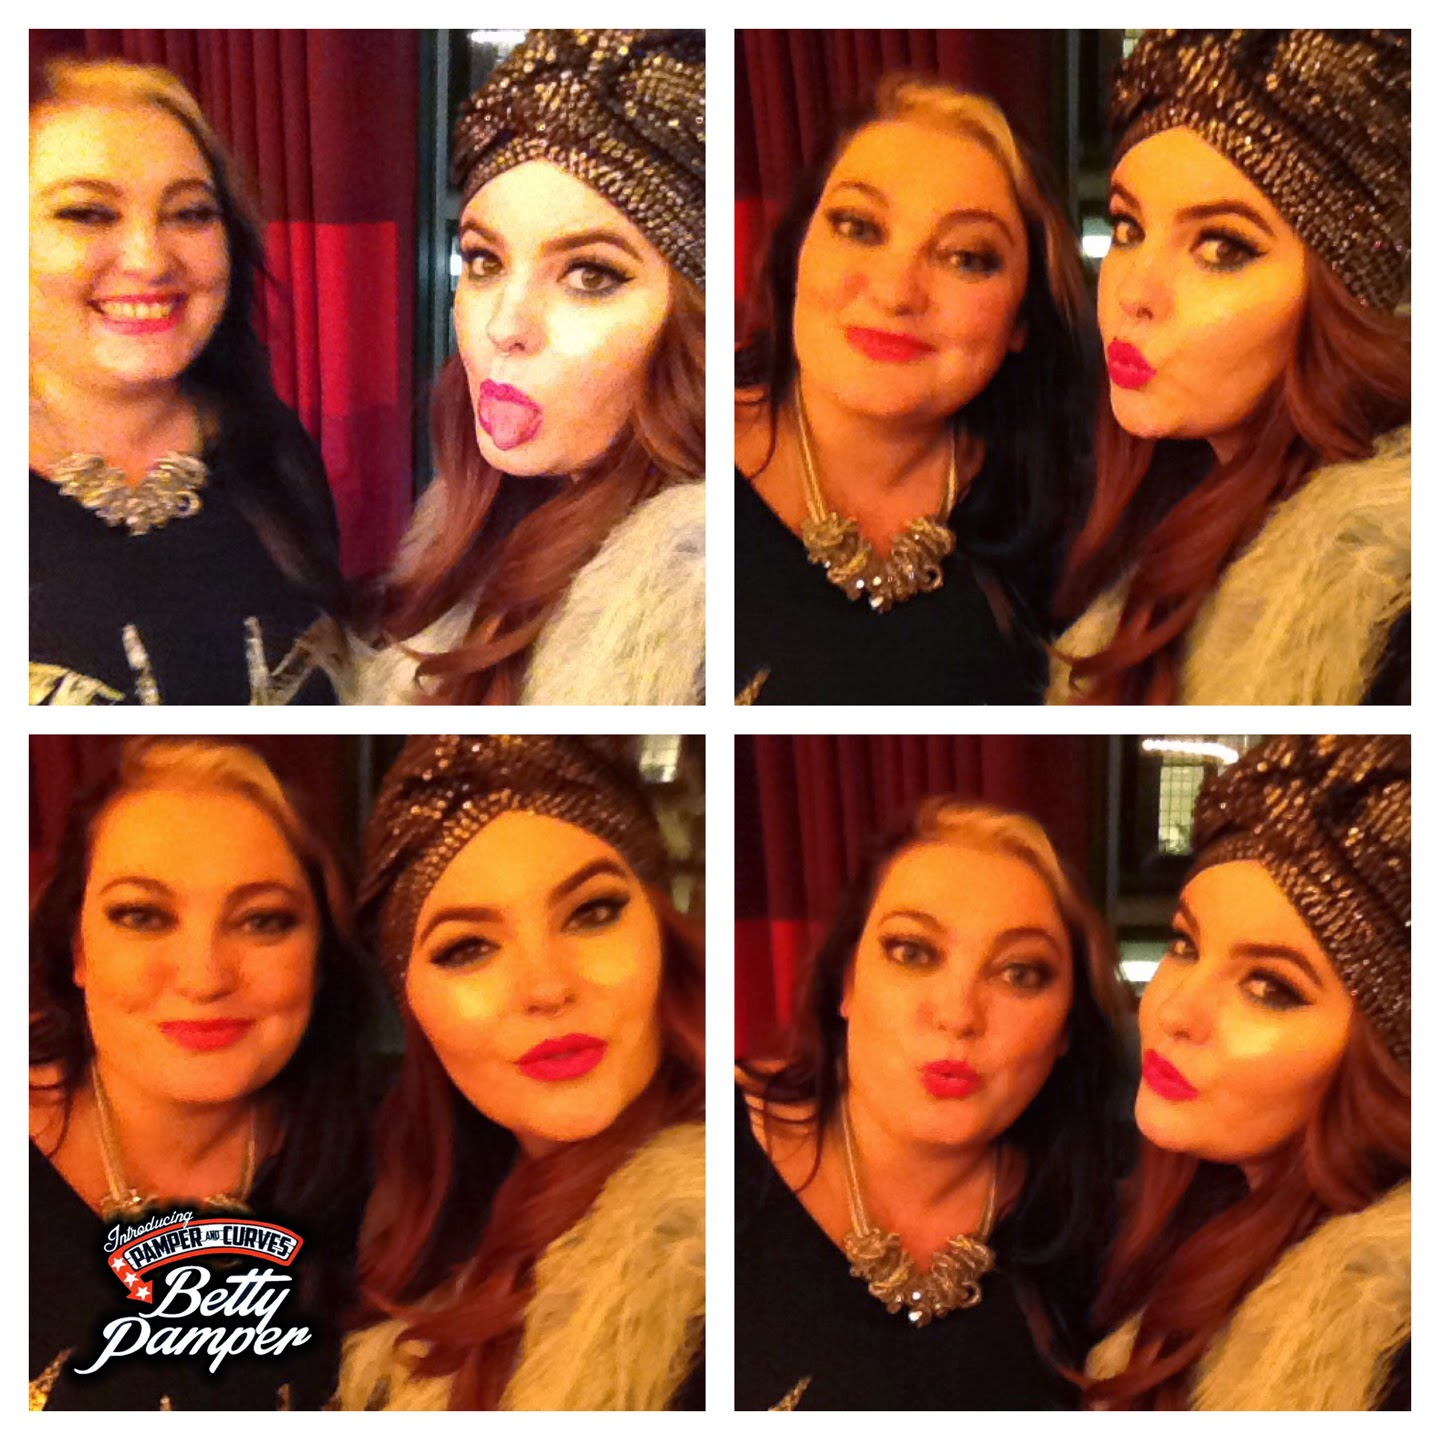 Betty pamper and Tess Holliday